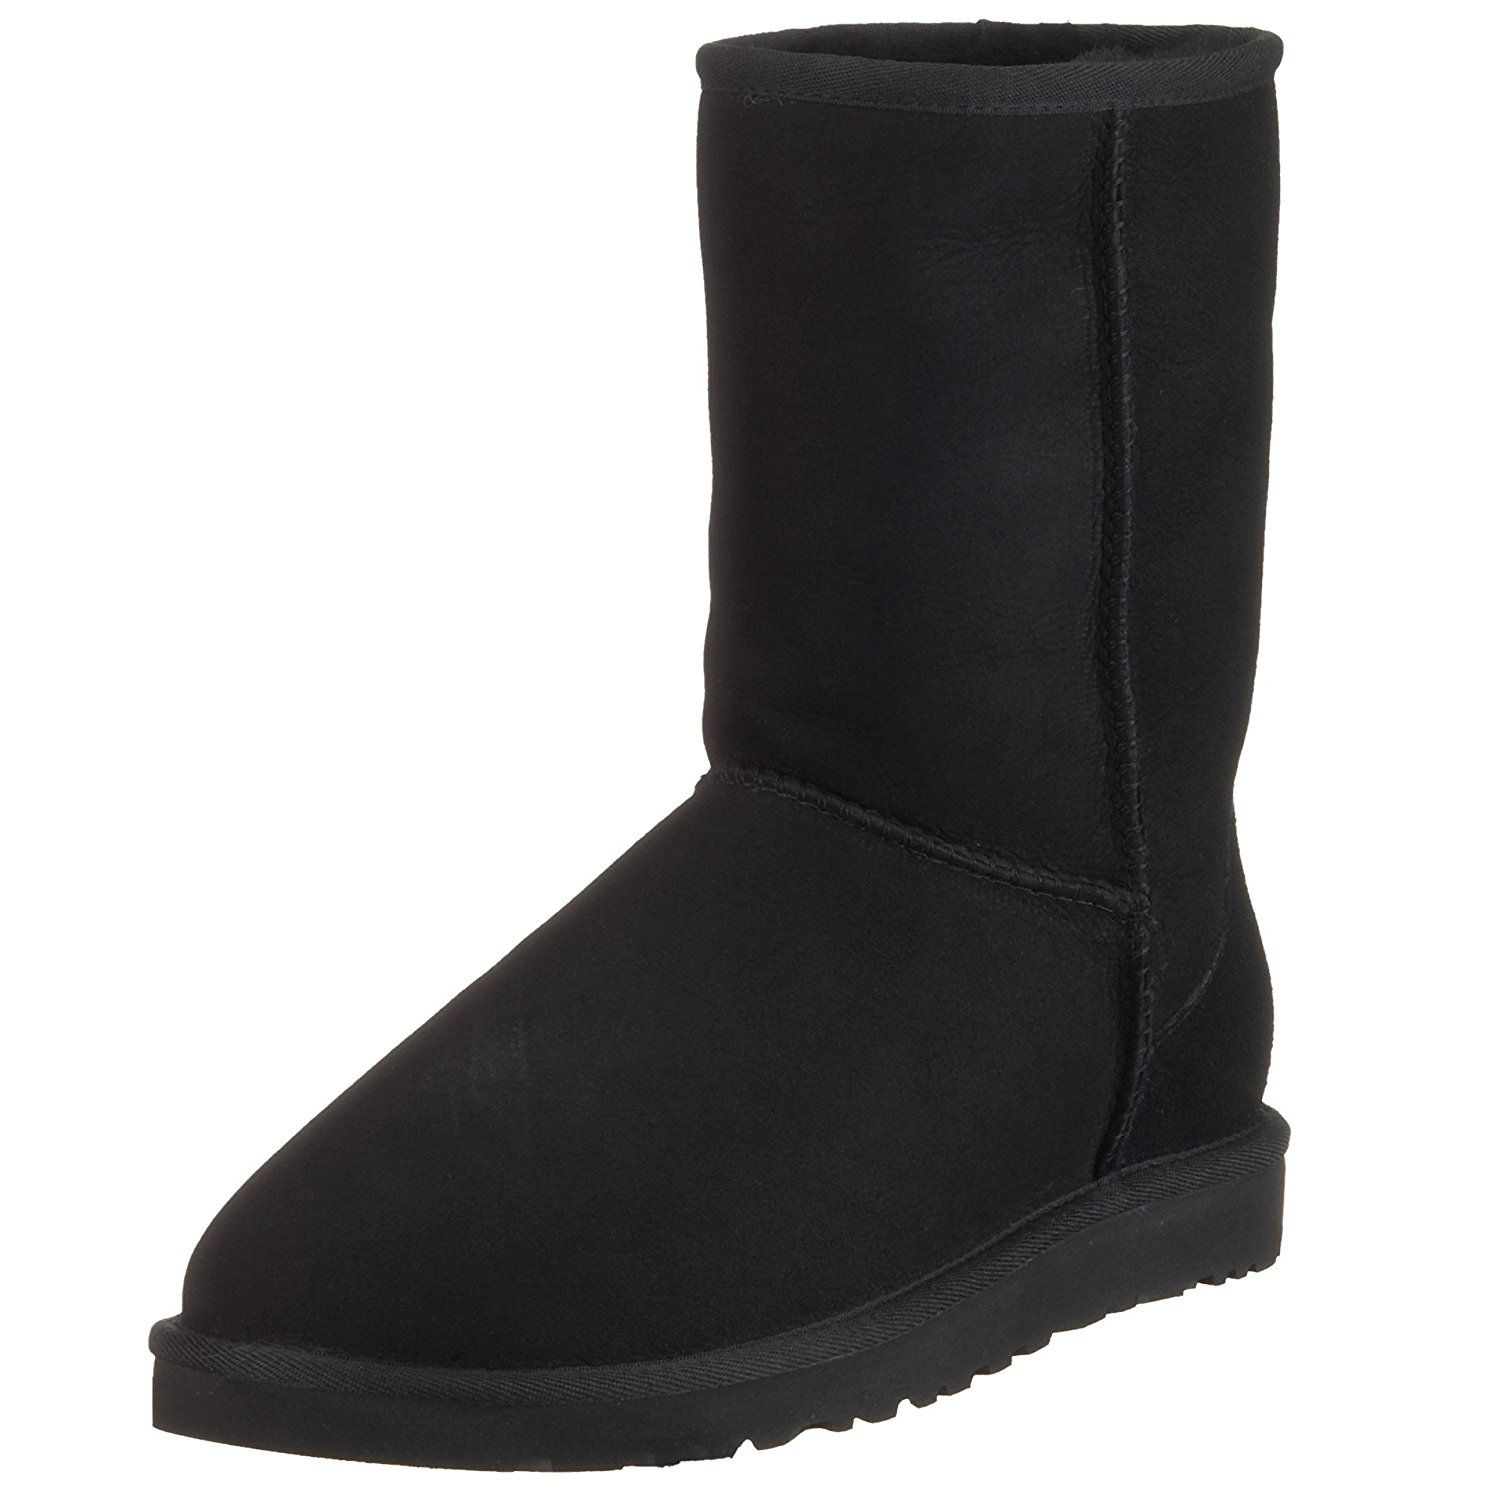 UGG Men's Classic Short Winter Boot, Black, 15 M US ** This is